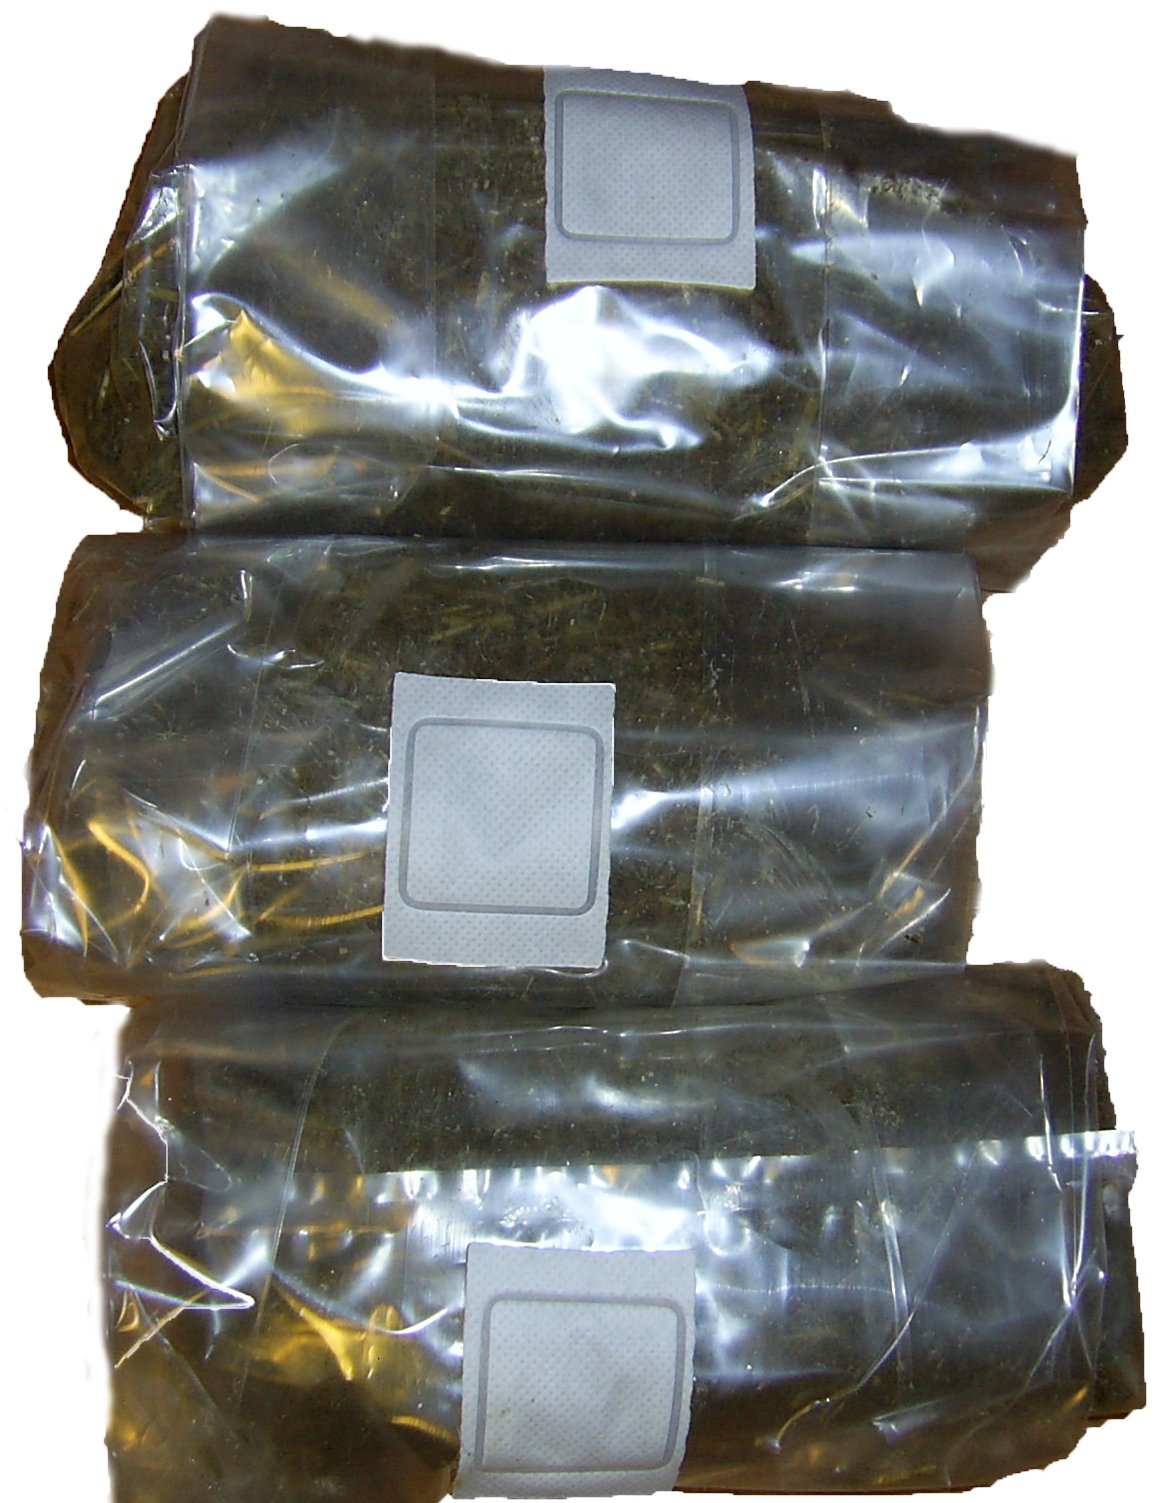 5 One Pound Grow Bags of Maure Based Mushroom Substrate